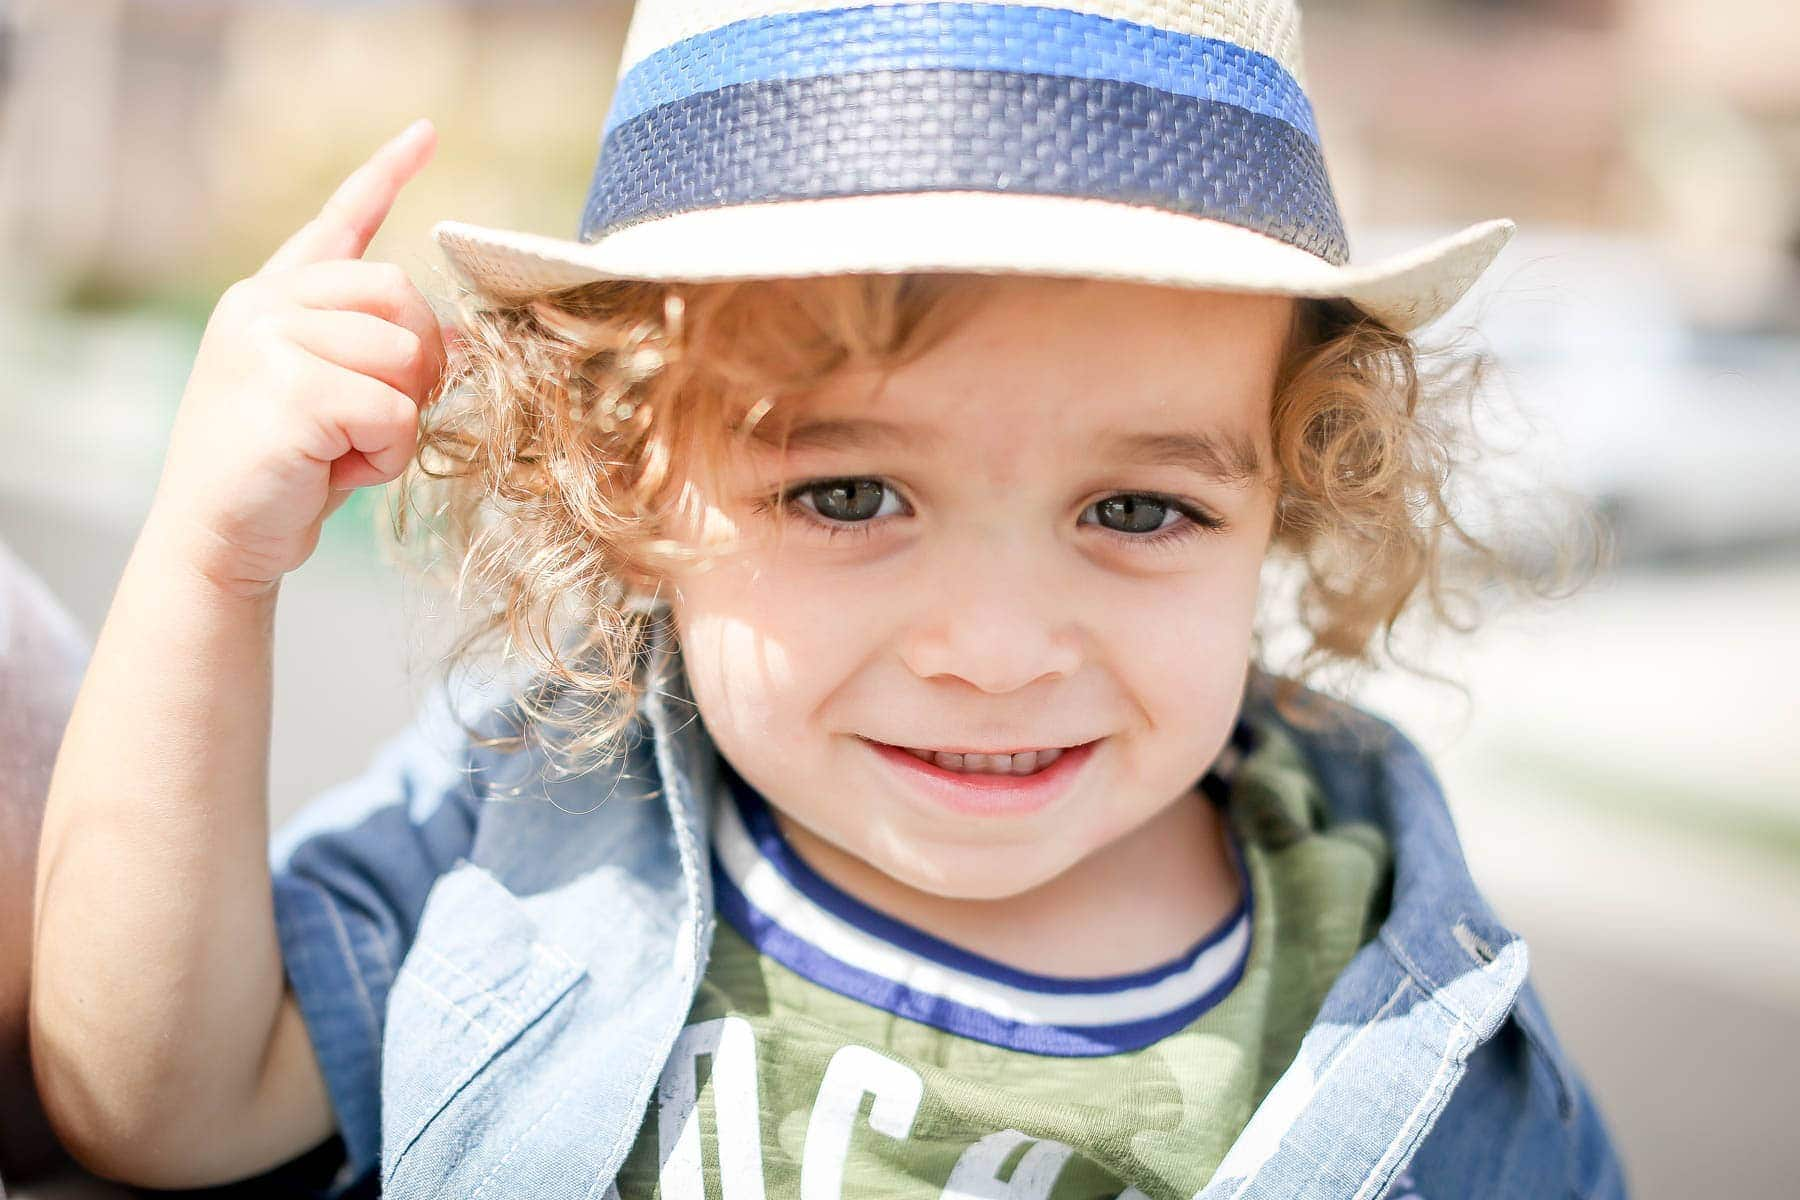 toddler with fashionable hat